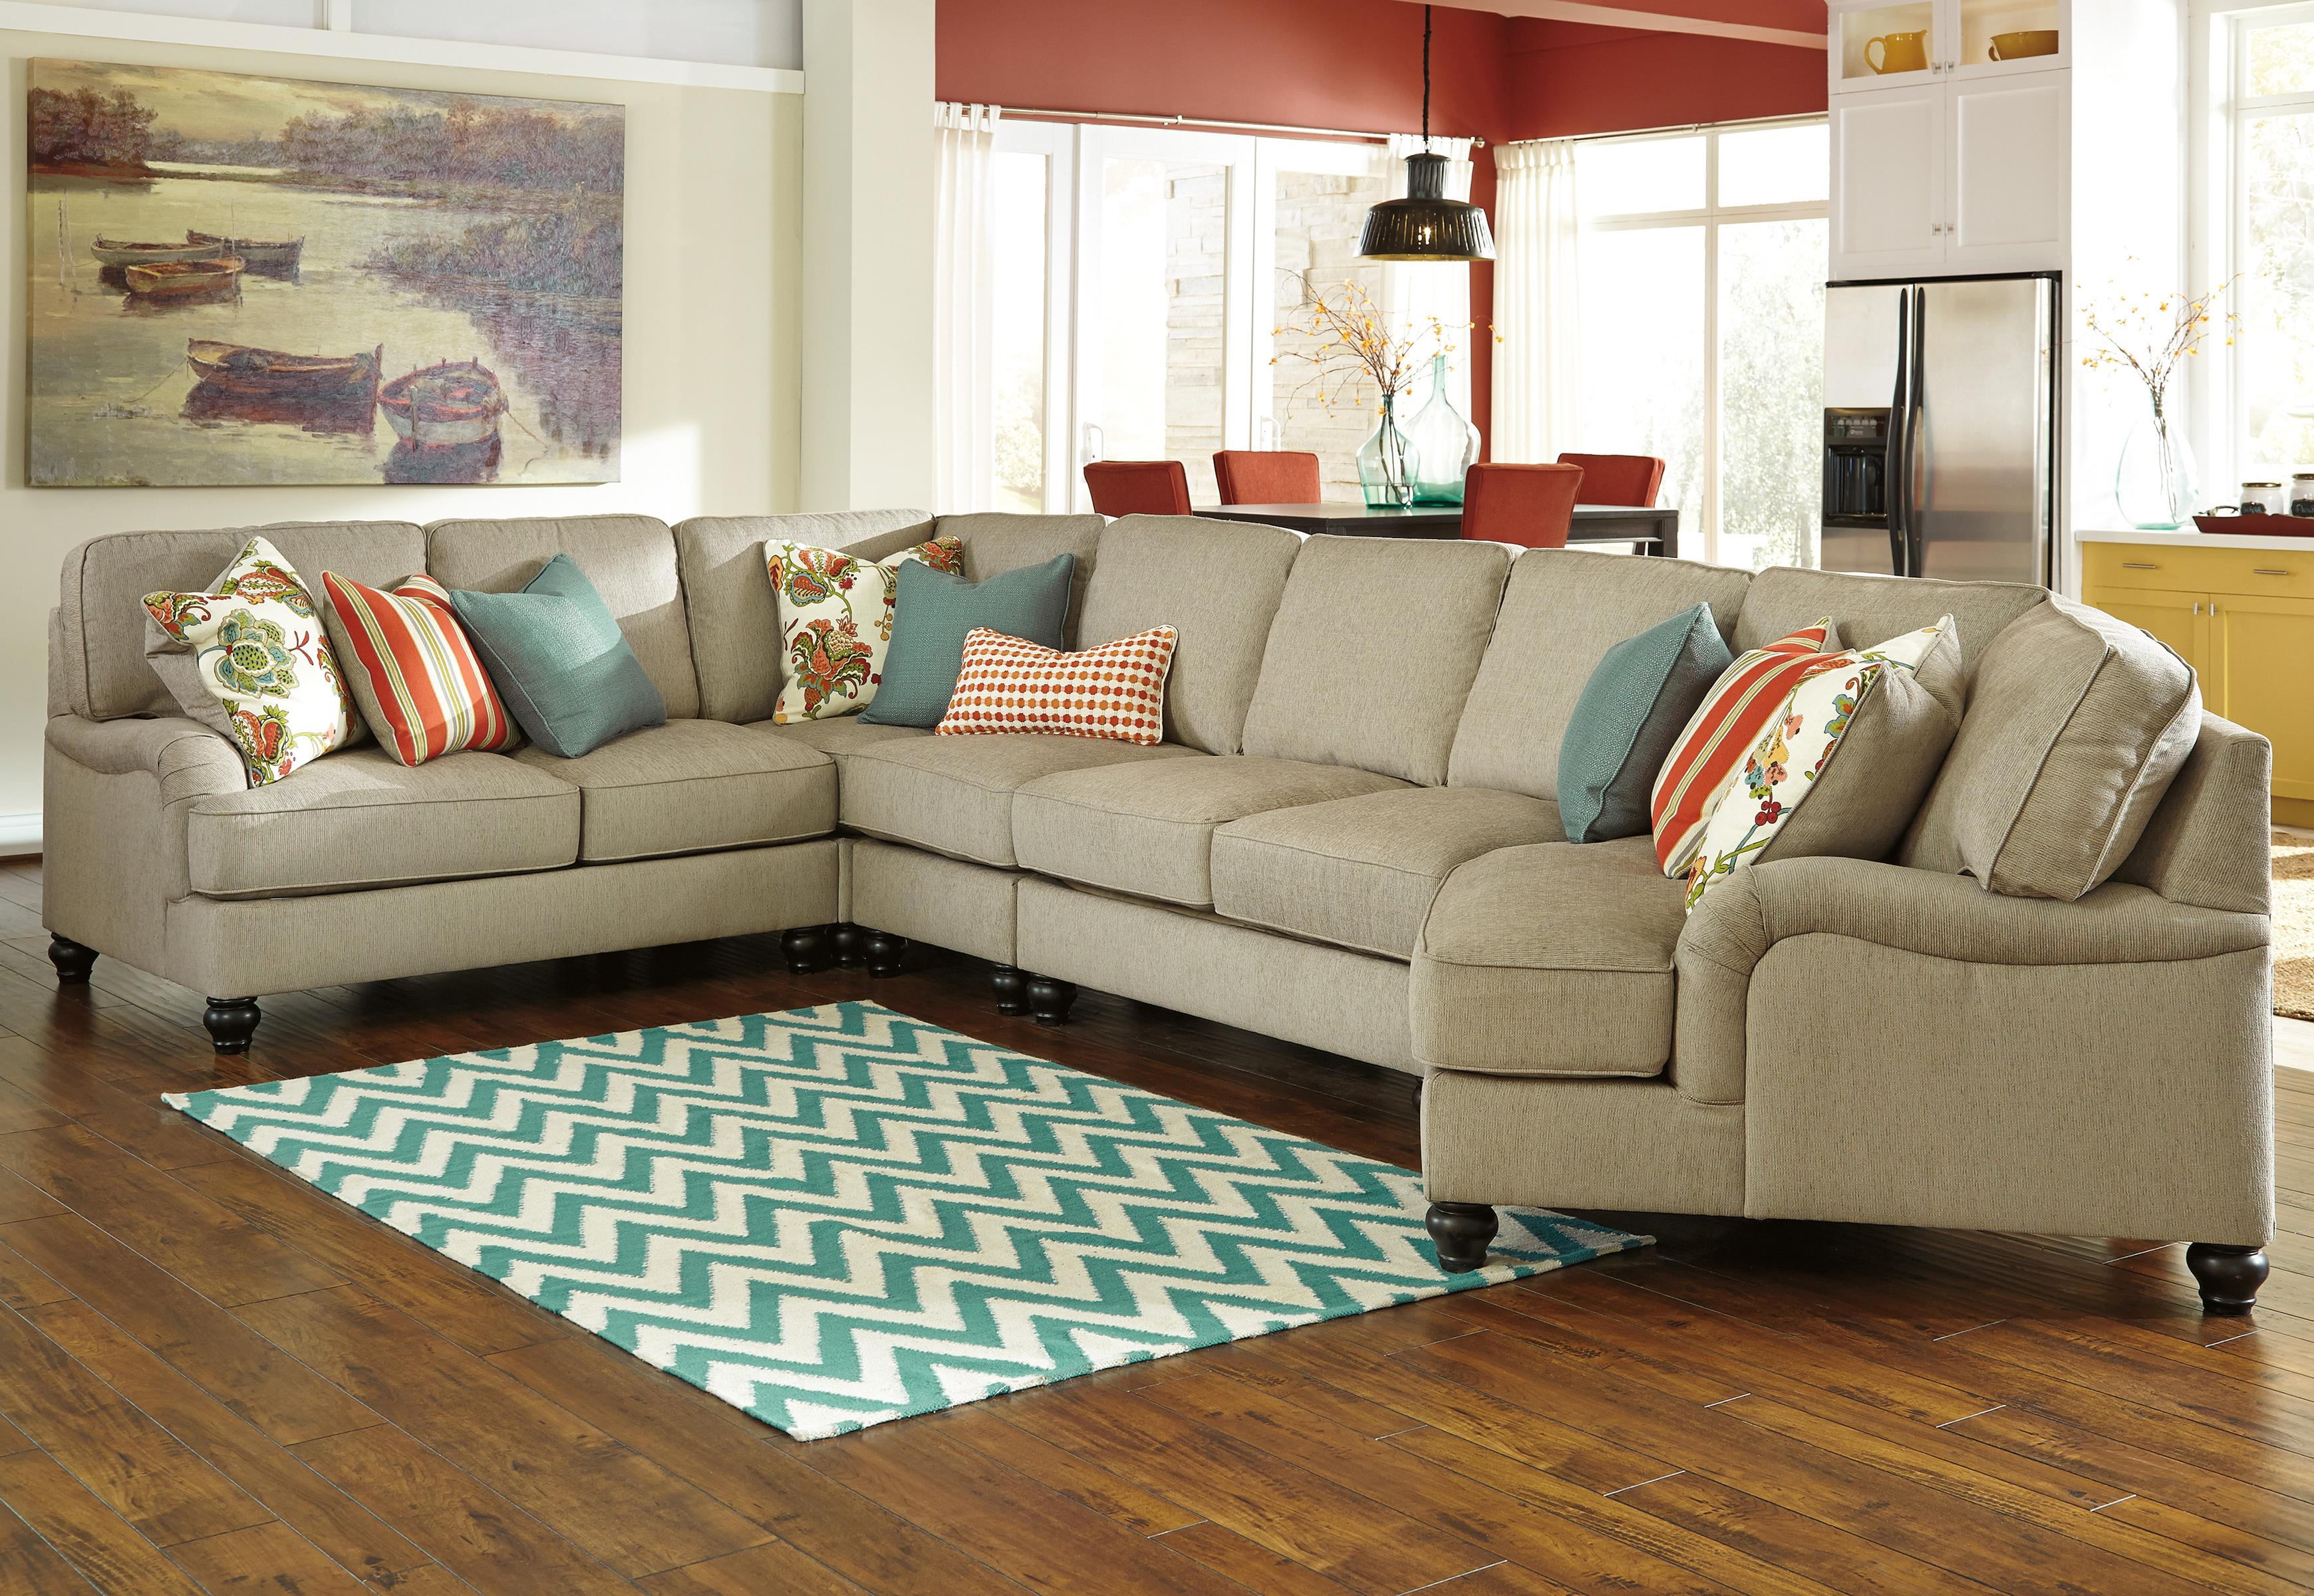 Benchcraft Kerridon 5-Piece Sectional with Right Cuddler - Item Number: 2630055+77+46+34+75